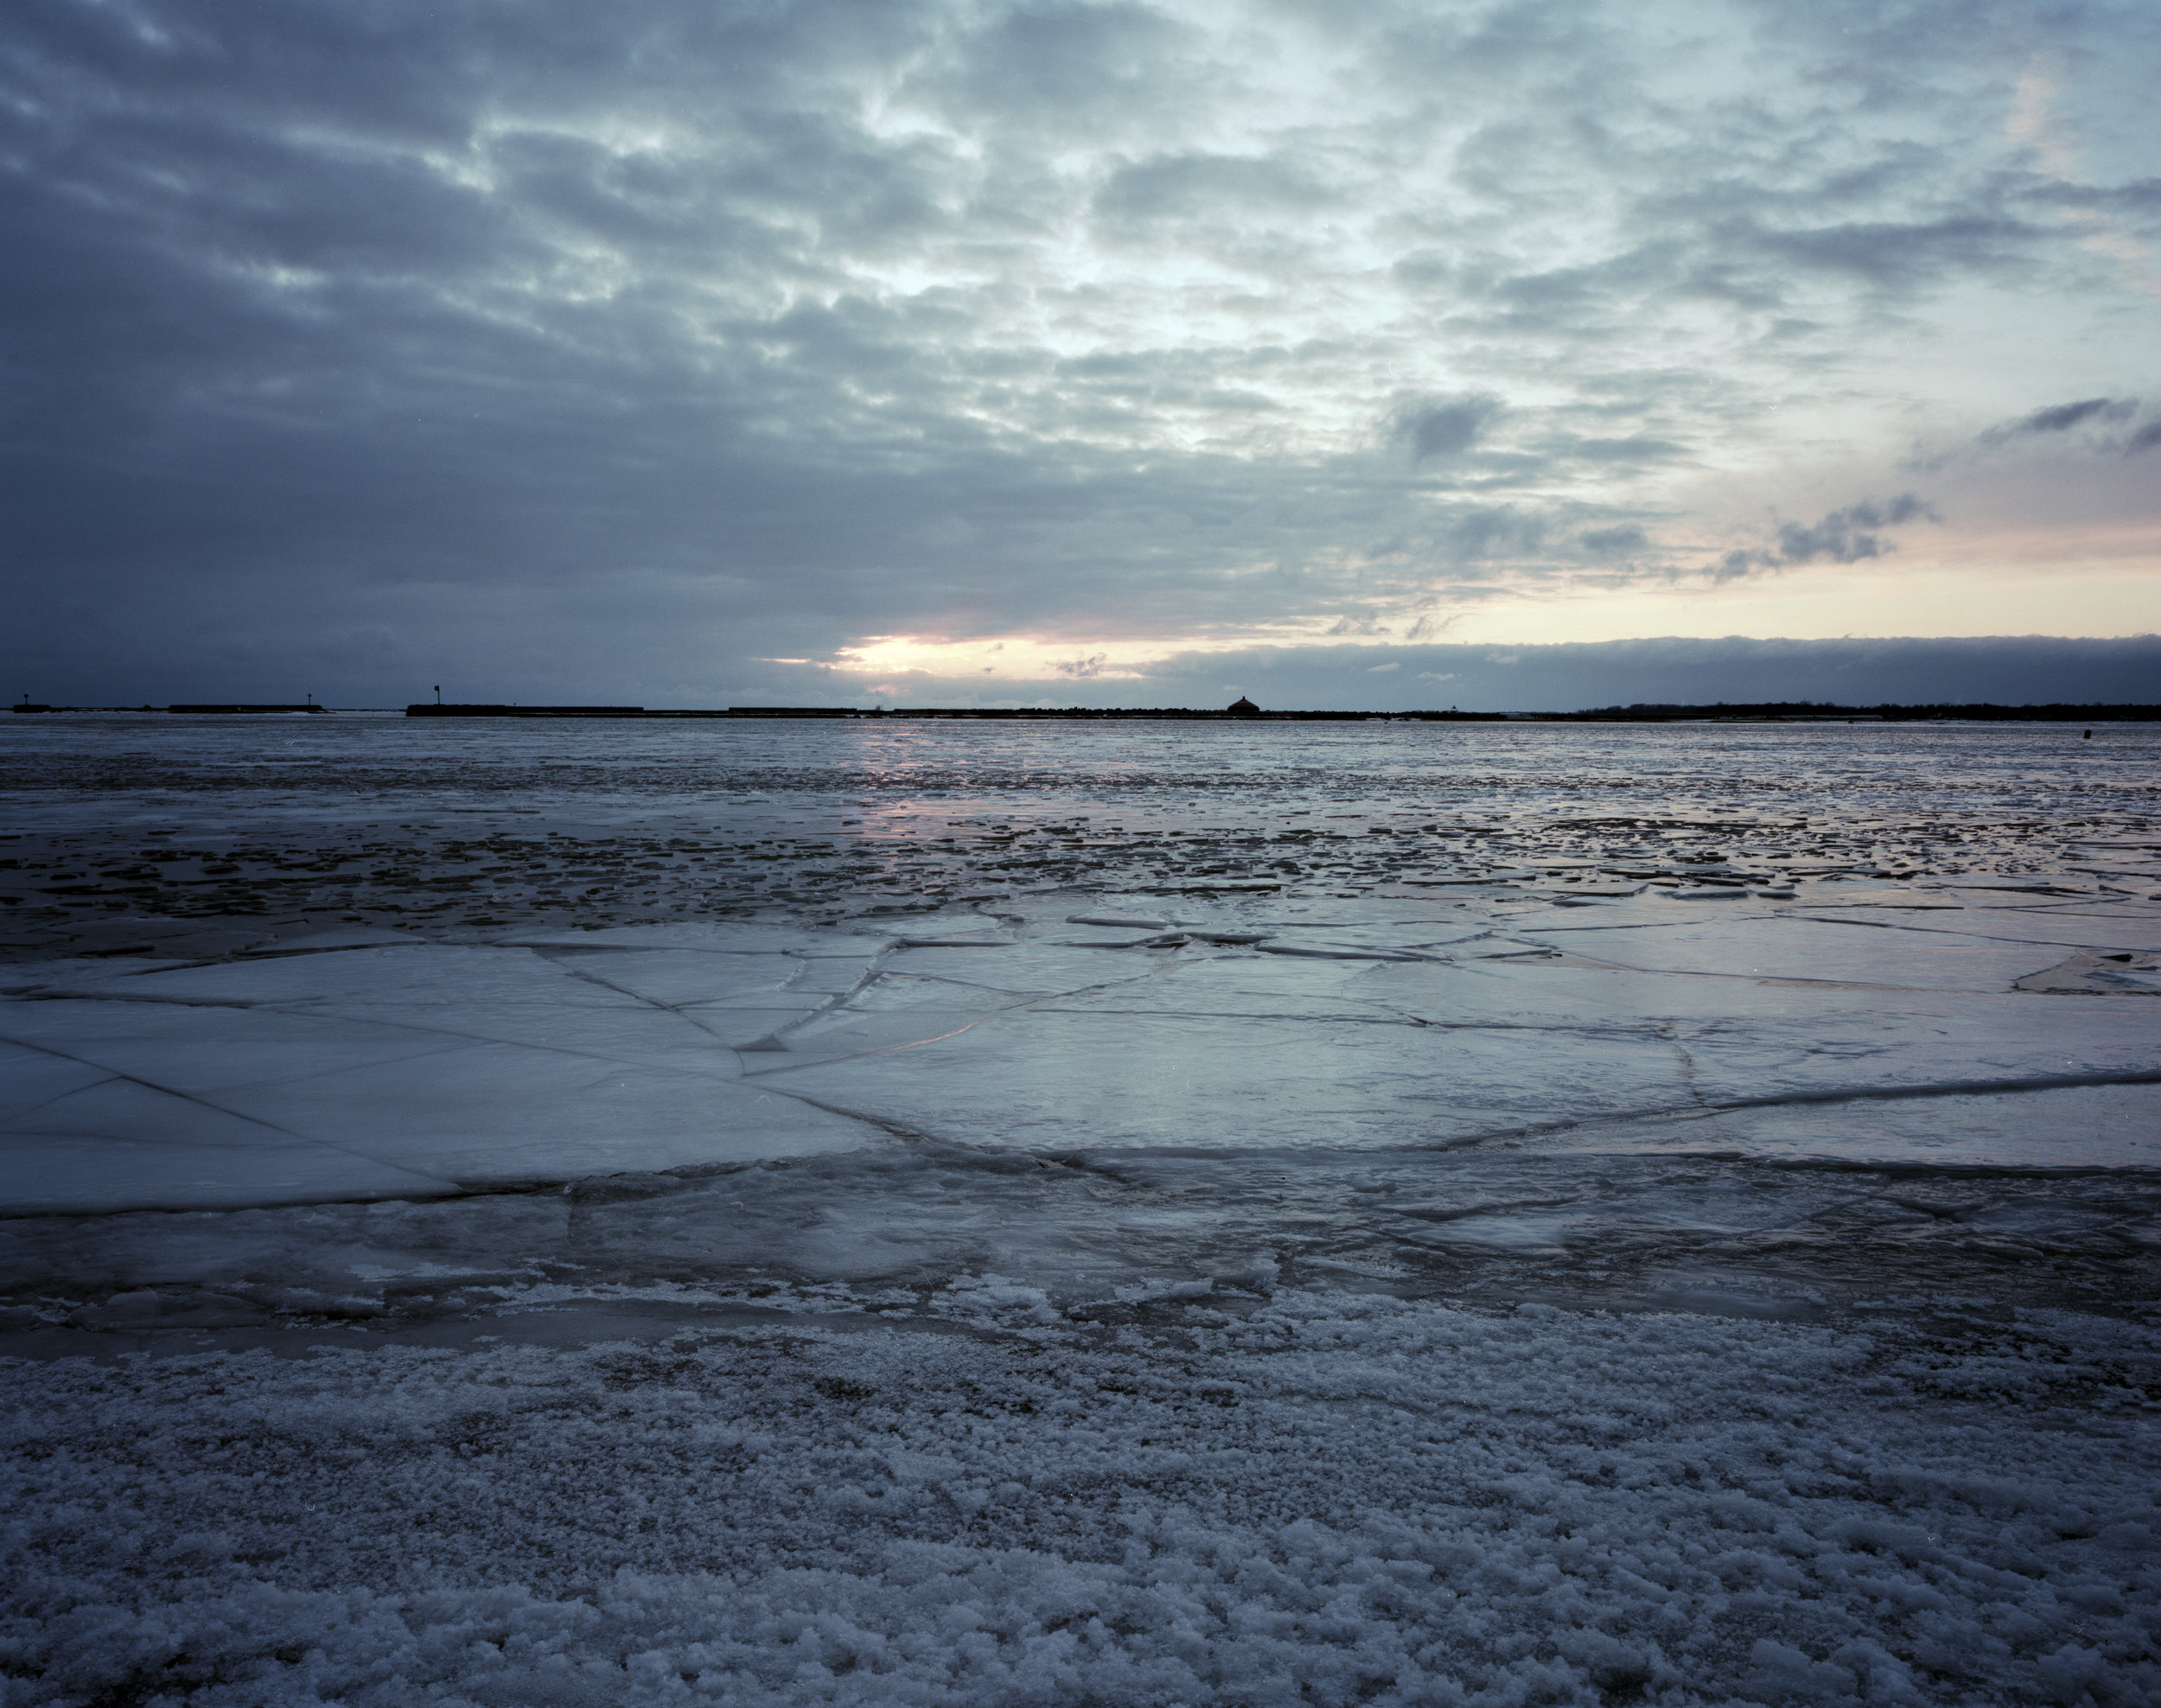 4x5 Portra 160 exposure of the frozen lake,